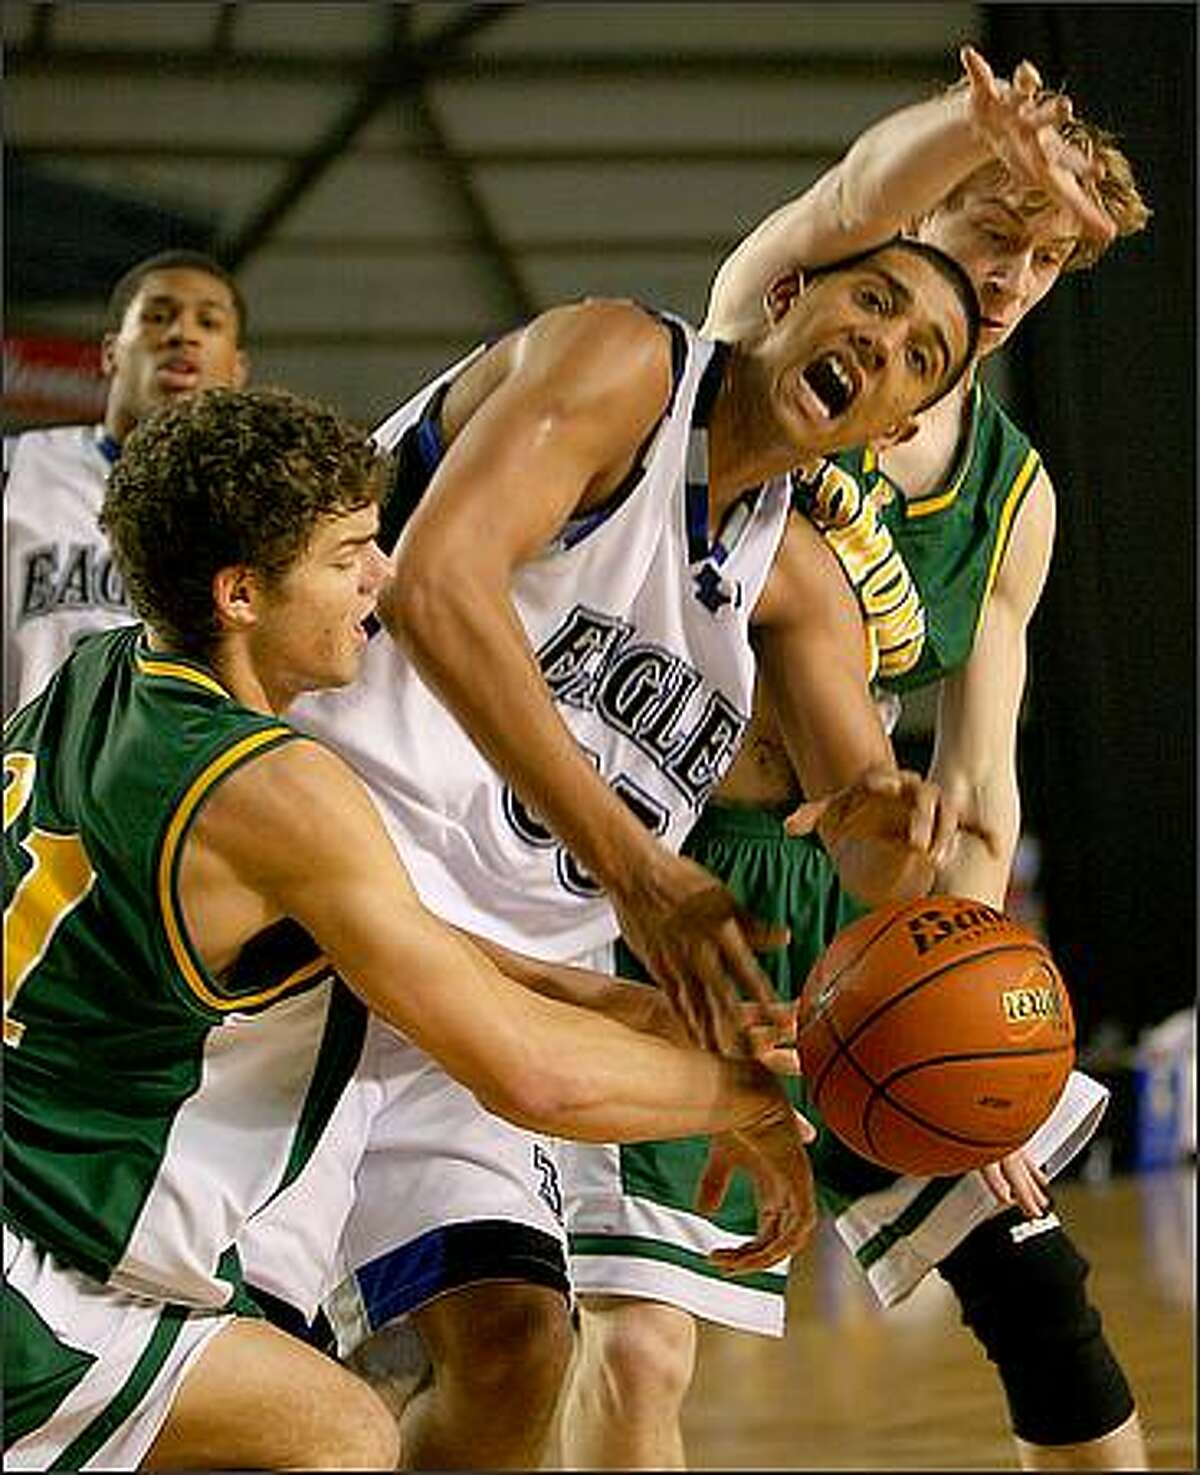 Redmond defenders Max Wisman (left) and Willie Gonia (right) did what they could to try and slow down Federal Way's JT Koontz and the rest of his Federal Way teammates, but couldn't do much as Federal Way High School beat Redmond High School 66-36 in the first round of the WIAA Boys' State Basketball Championships at the Tacoma Dome in Tacoma, Wash.